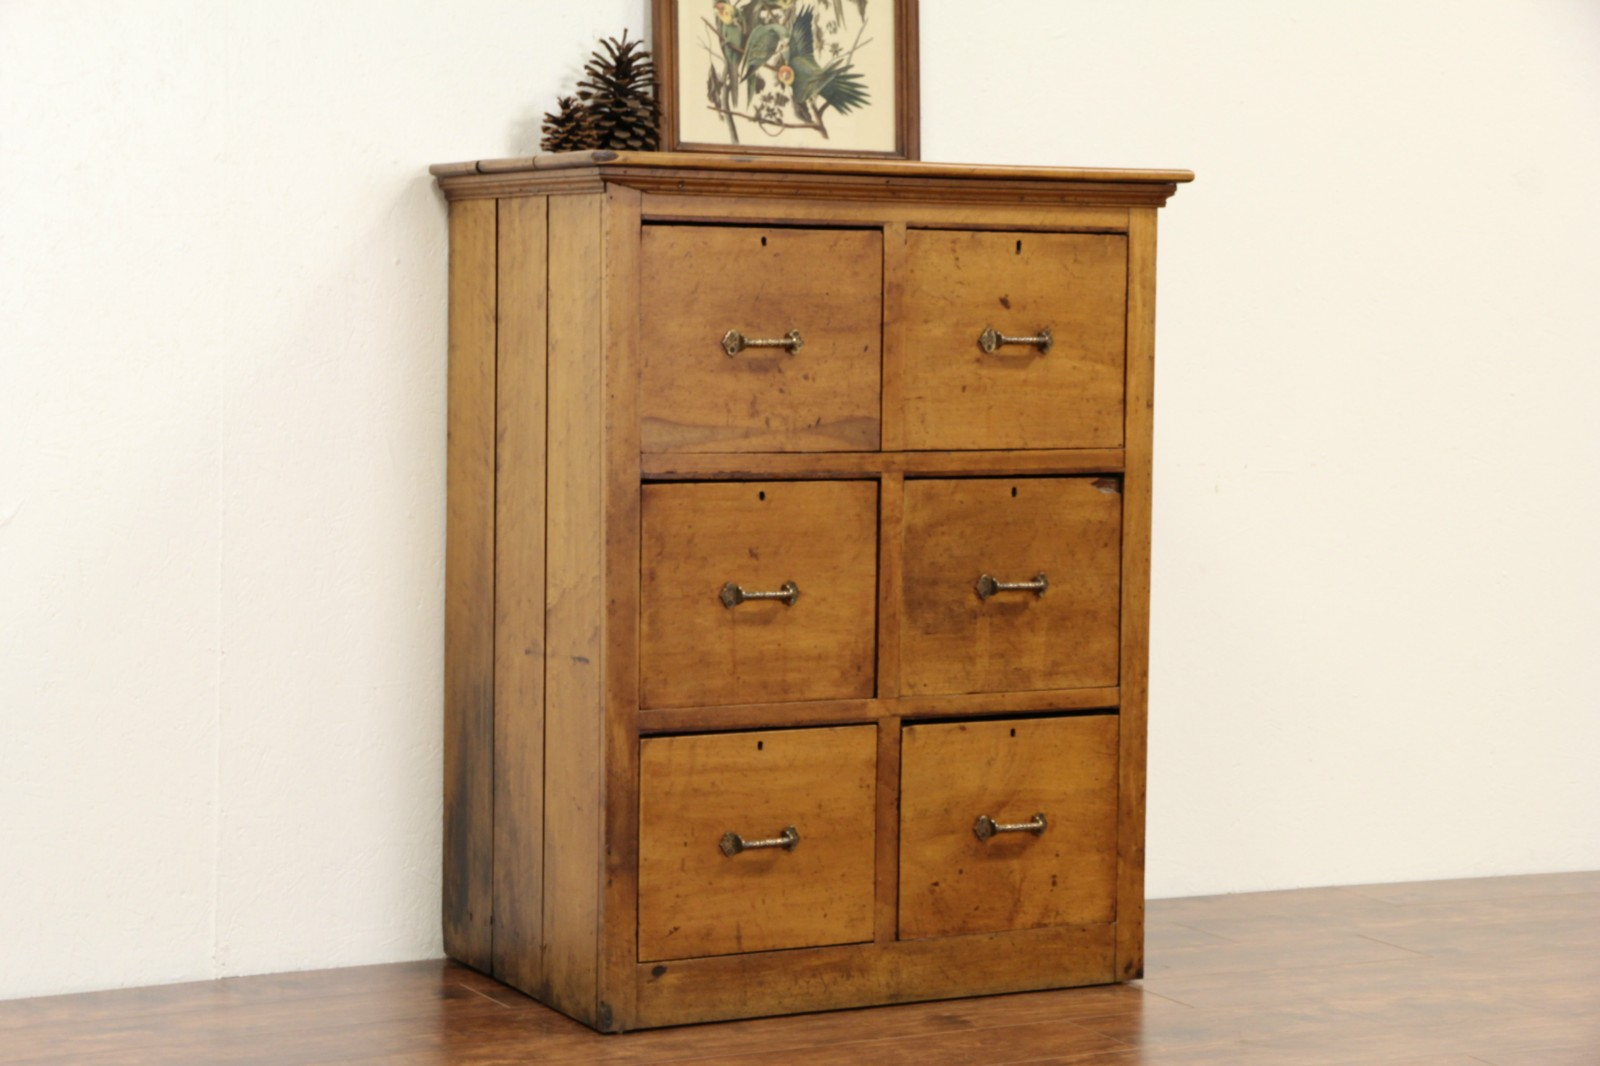 Primitive Maple 1890 Antique 6 Drawer Chest, File Cabinet, Bronze Pulls